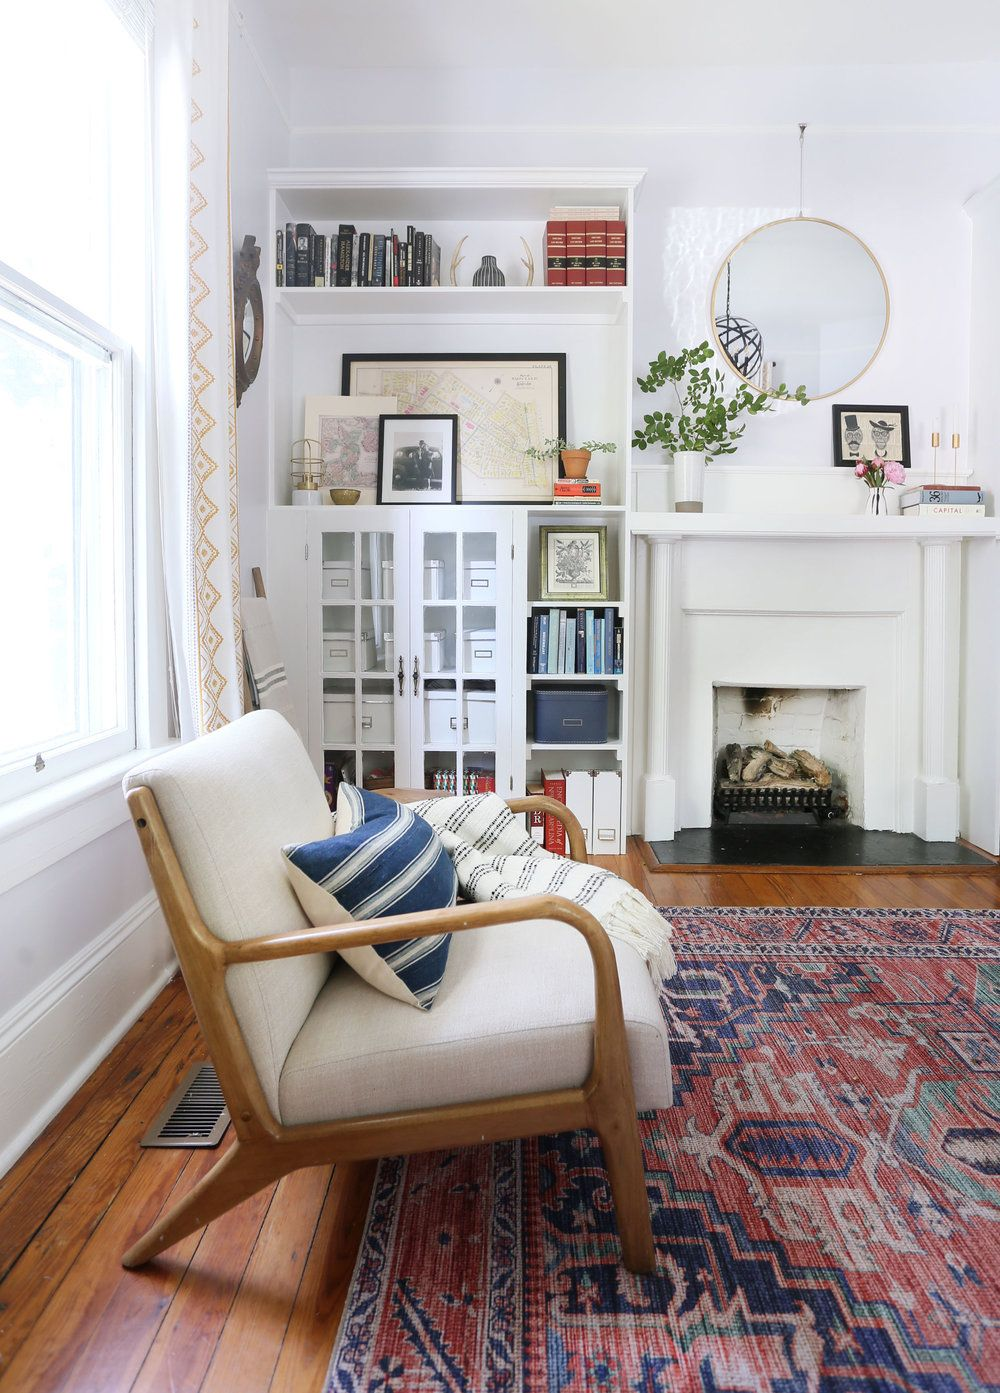 A Cozy Collected Living Room In The Heart Of Raleigh Nc Sunny Circle Studio Small Space Living Room Small Space Living Large Floor Rugs